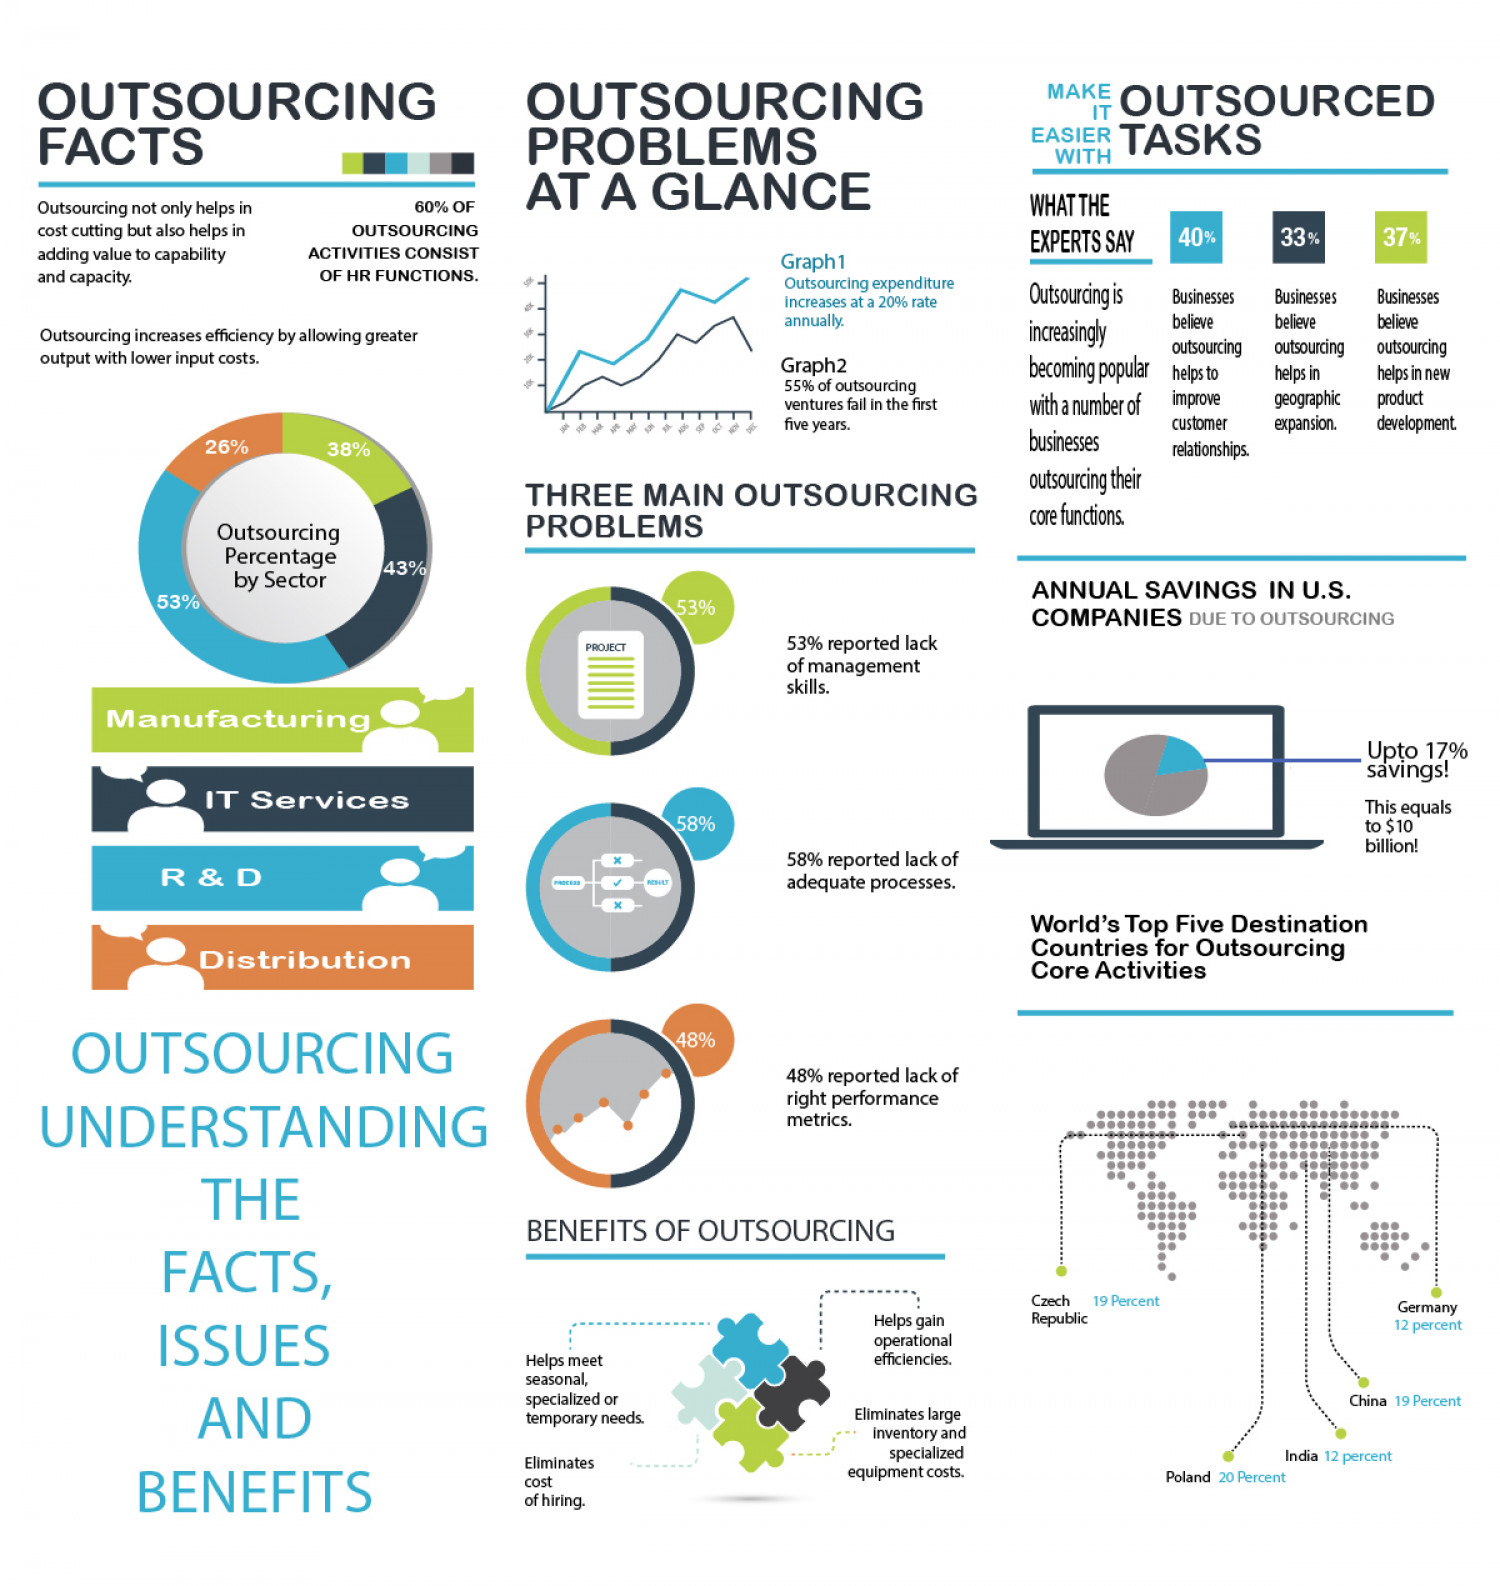 Outsourcing Understanding The Facts, Issues And Benefits Infographic